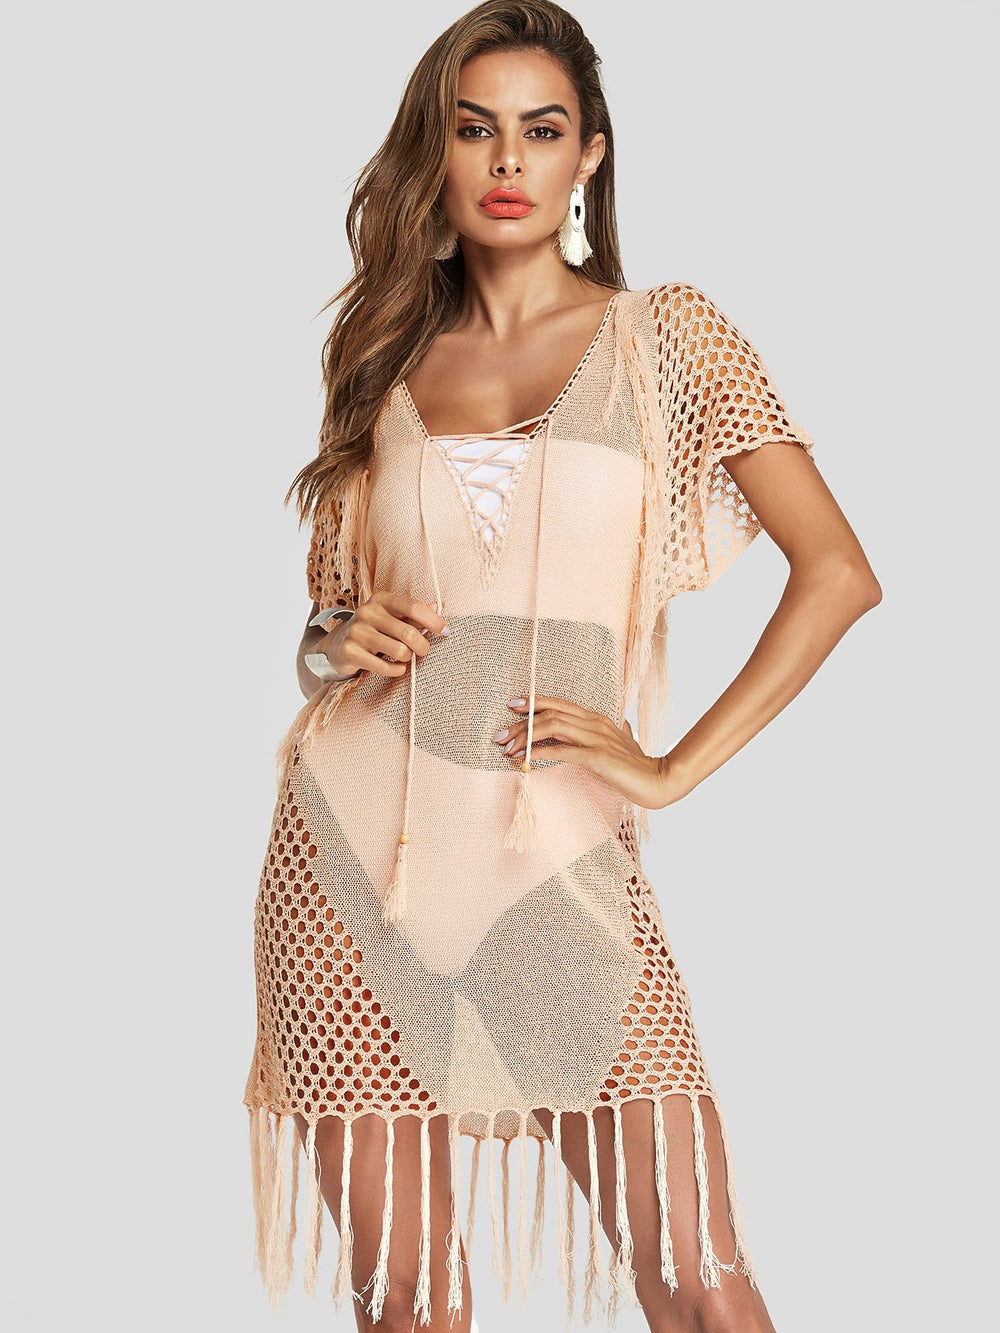 V-Neck Tassel Hollow Short Sleeve Light Pink Beachwear